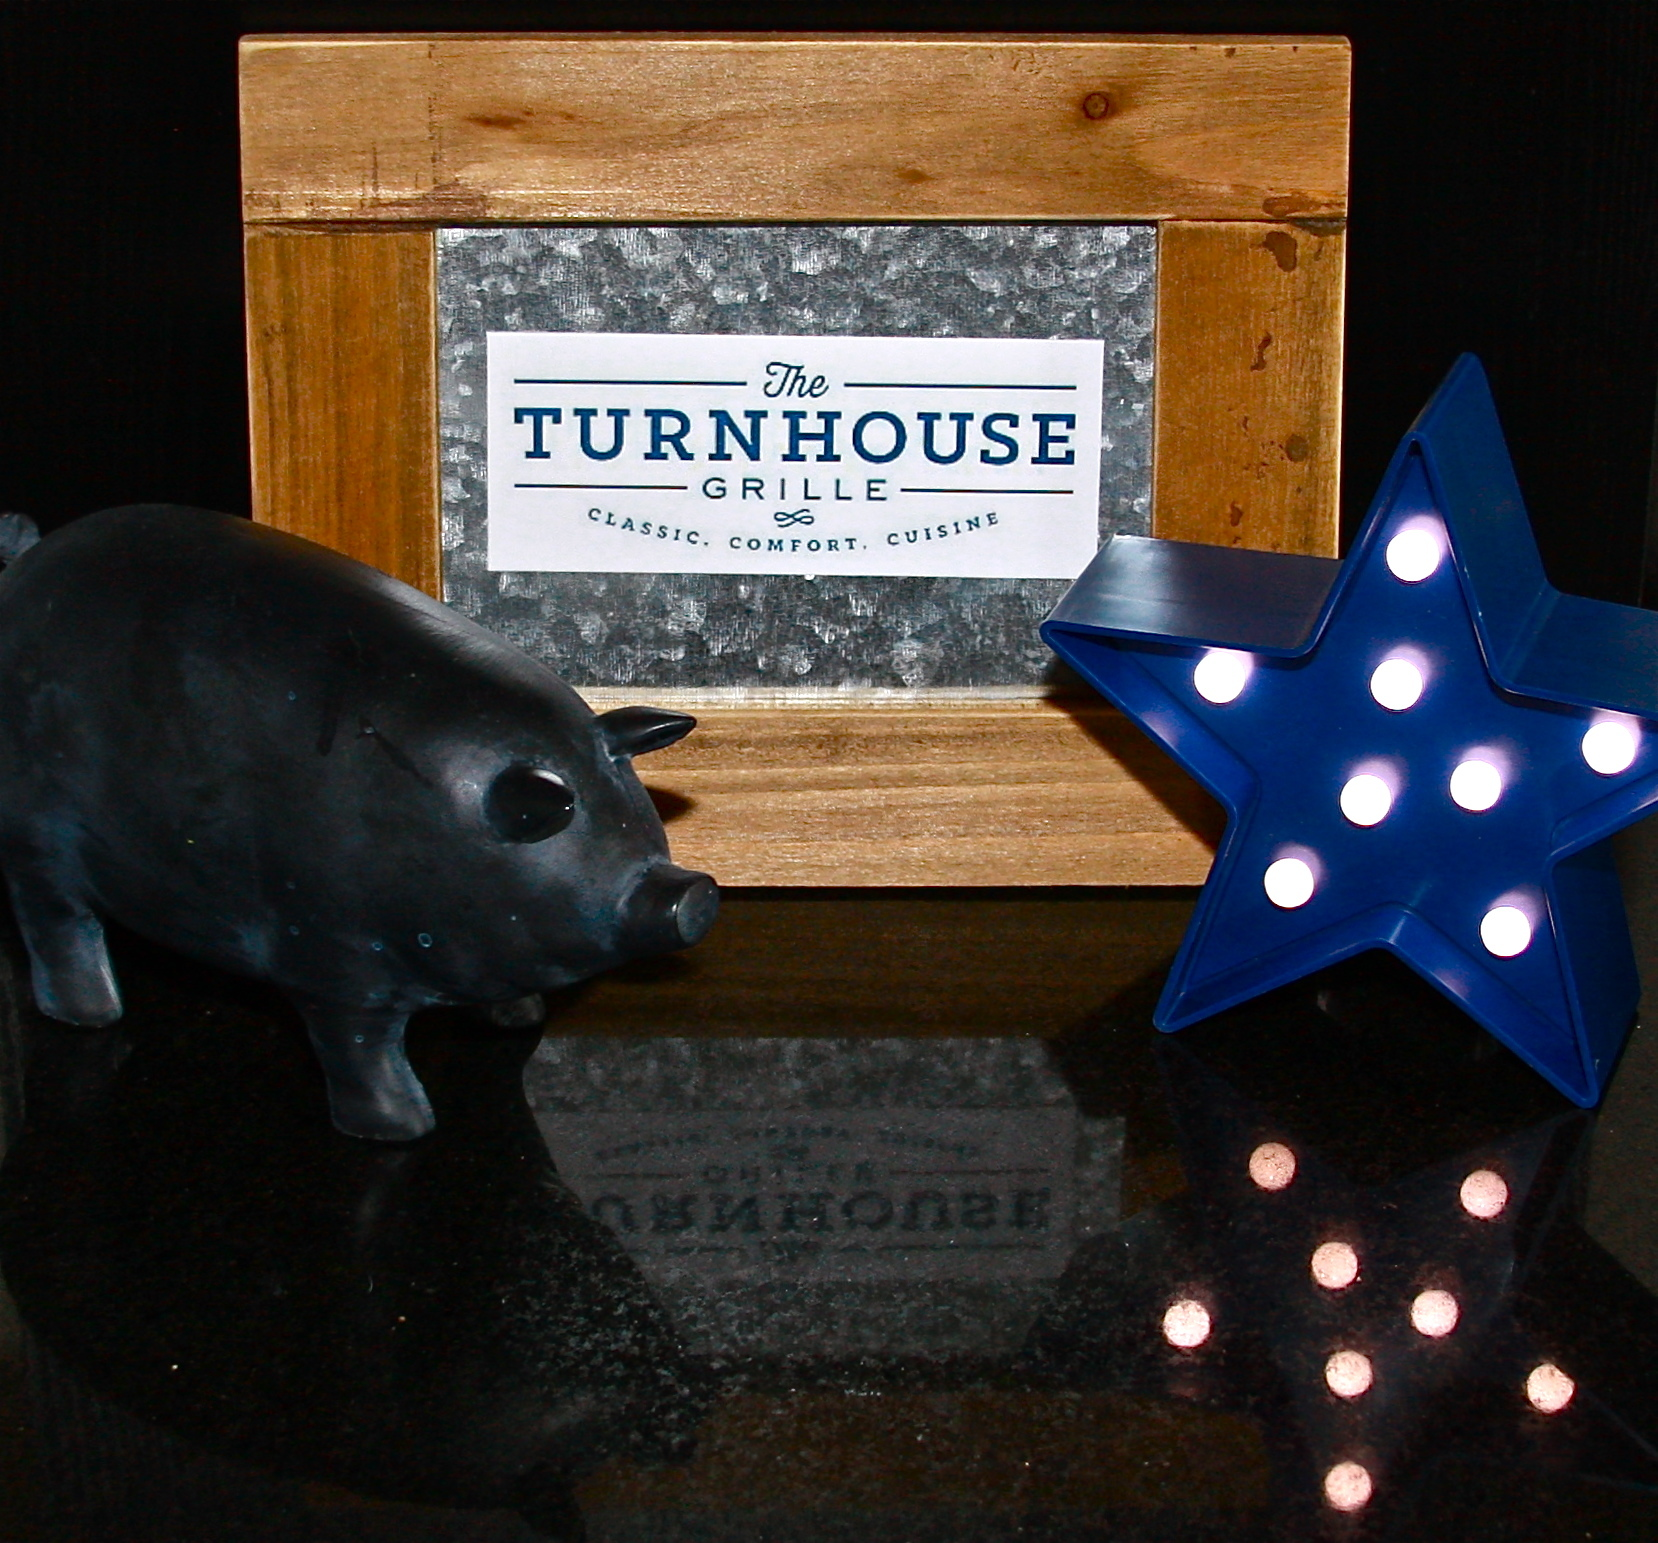 The Turnhouse Grille